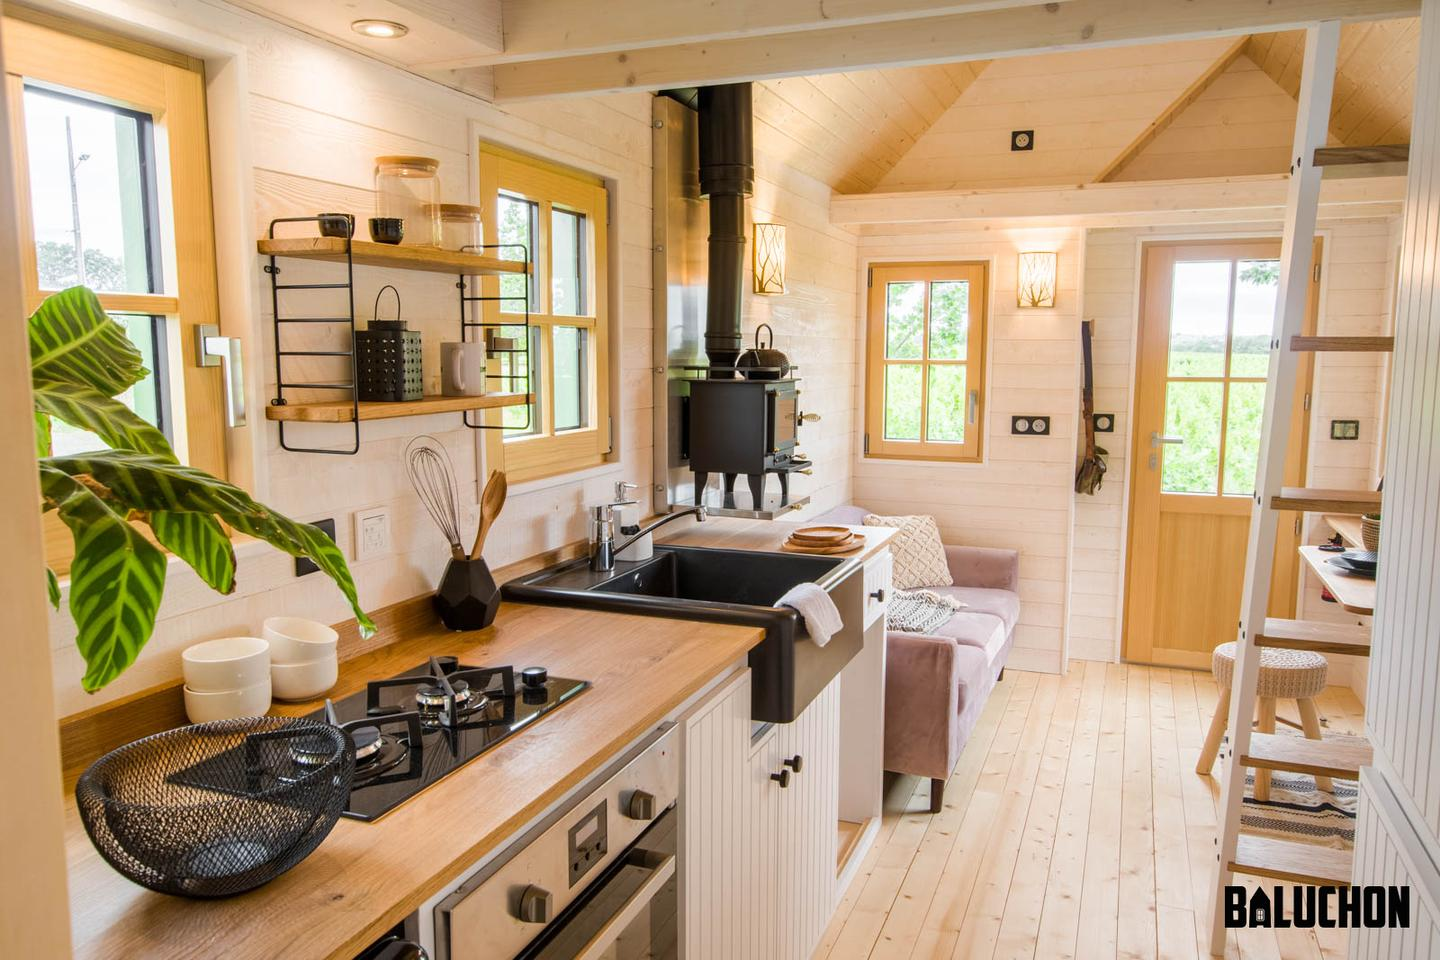 La Mésange Verte includes a tiny wood-burning stove for heating the interior